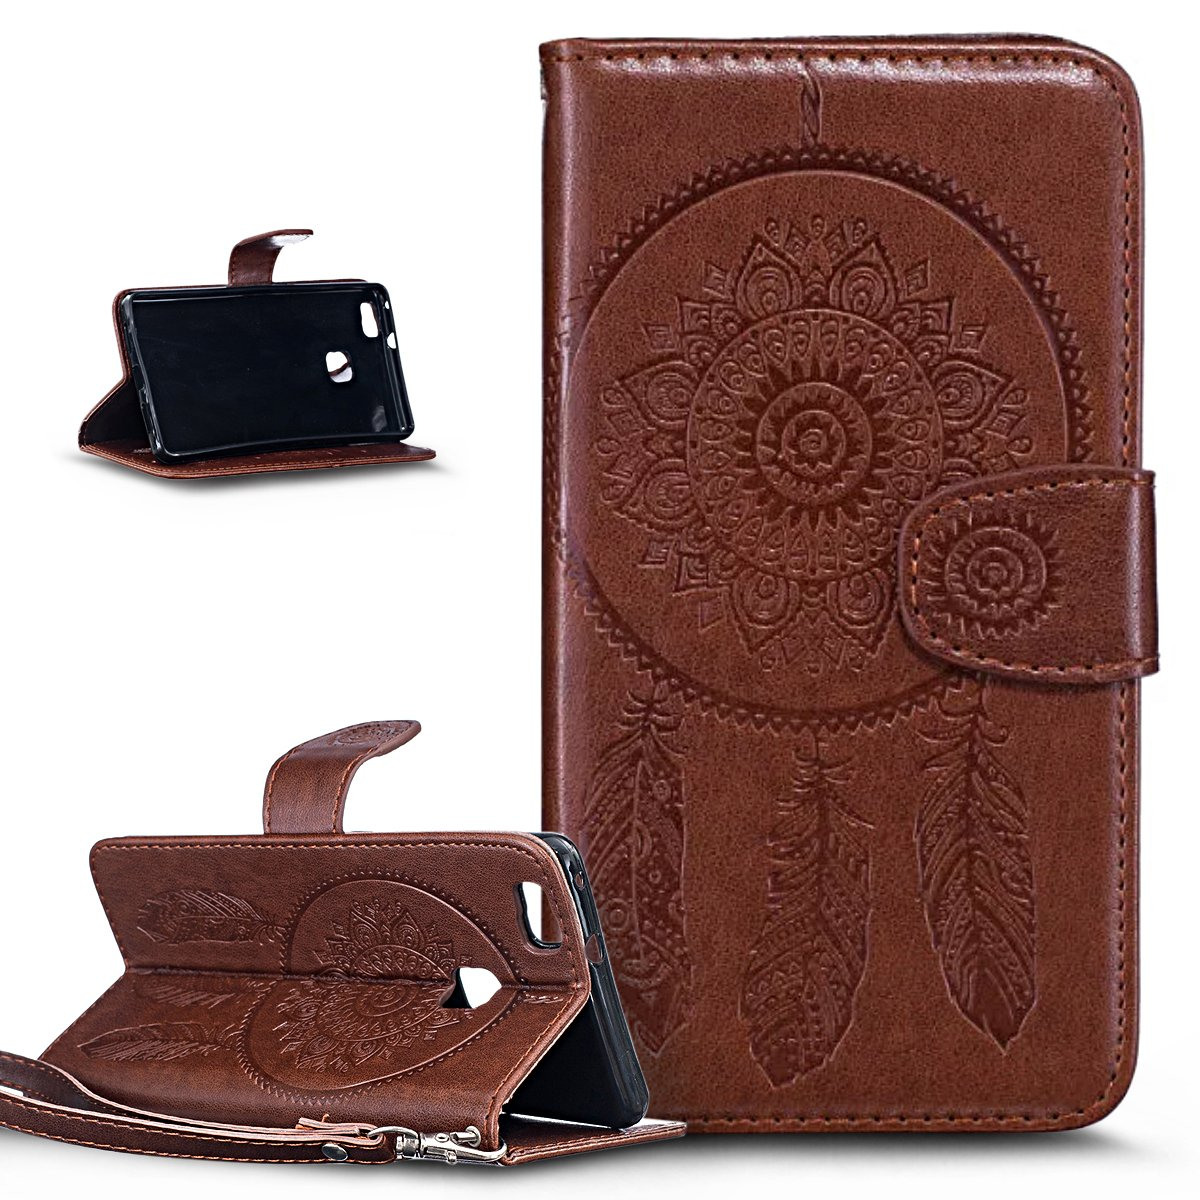 Huawei P9 Lite Case, Wallet Case for Huawei P9 Lite, ikasus Embossing Henna Mandala Floral Flowers PU Leather Magnetic Flip Folio Kickstand Wallet Card Slots Wallet Case for Huawei P9 Lite, Mandala:Brown